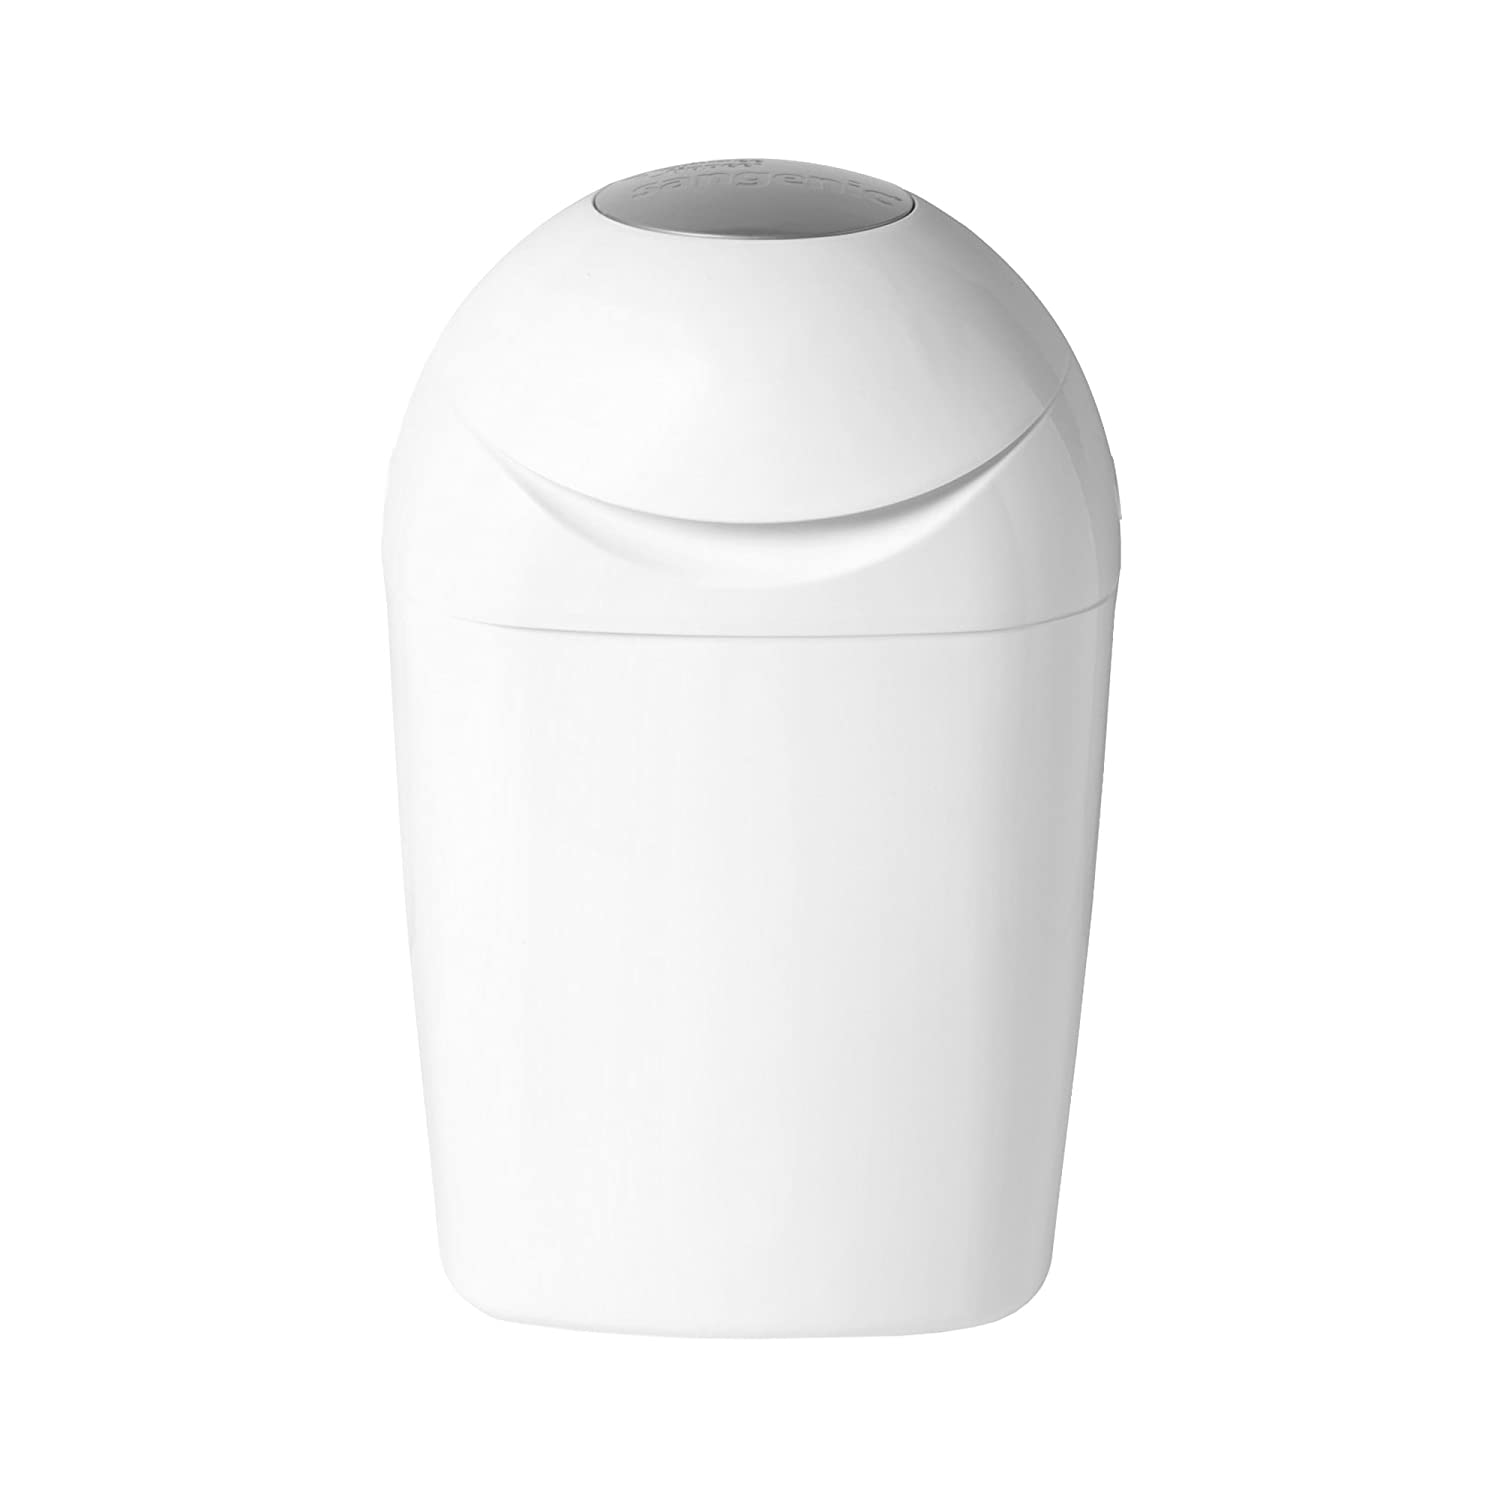 Tommee Tippee 43336272 Poubelle à Couches Tec Sangenic Blanche 5010415400116 poubelle à couches sangenic poubelle à couches tec rose poubelle à couches angelcare